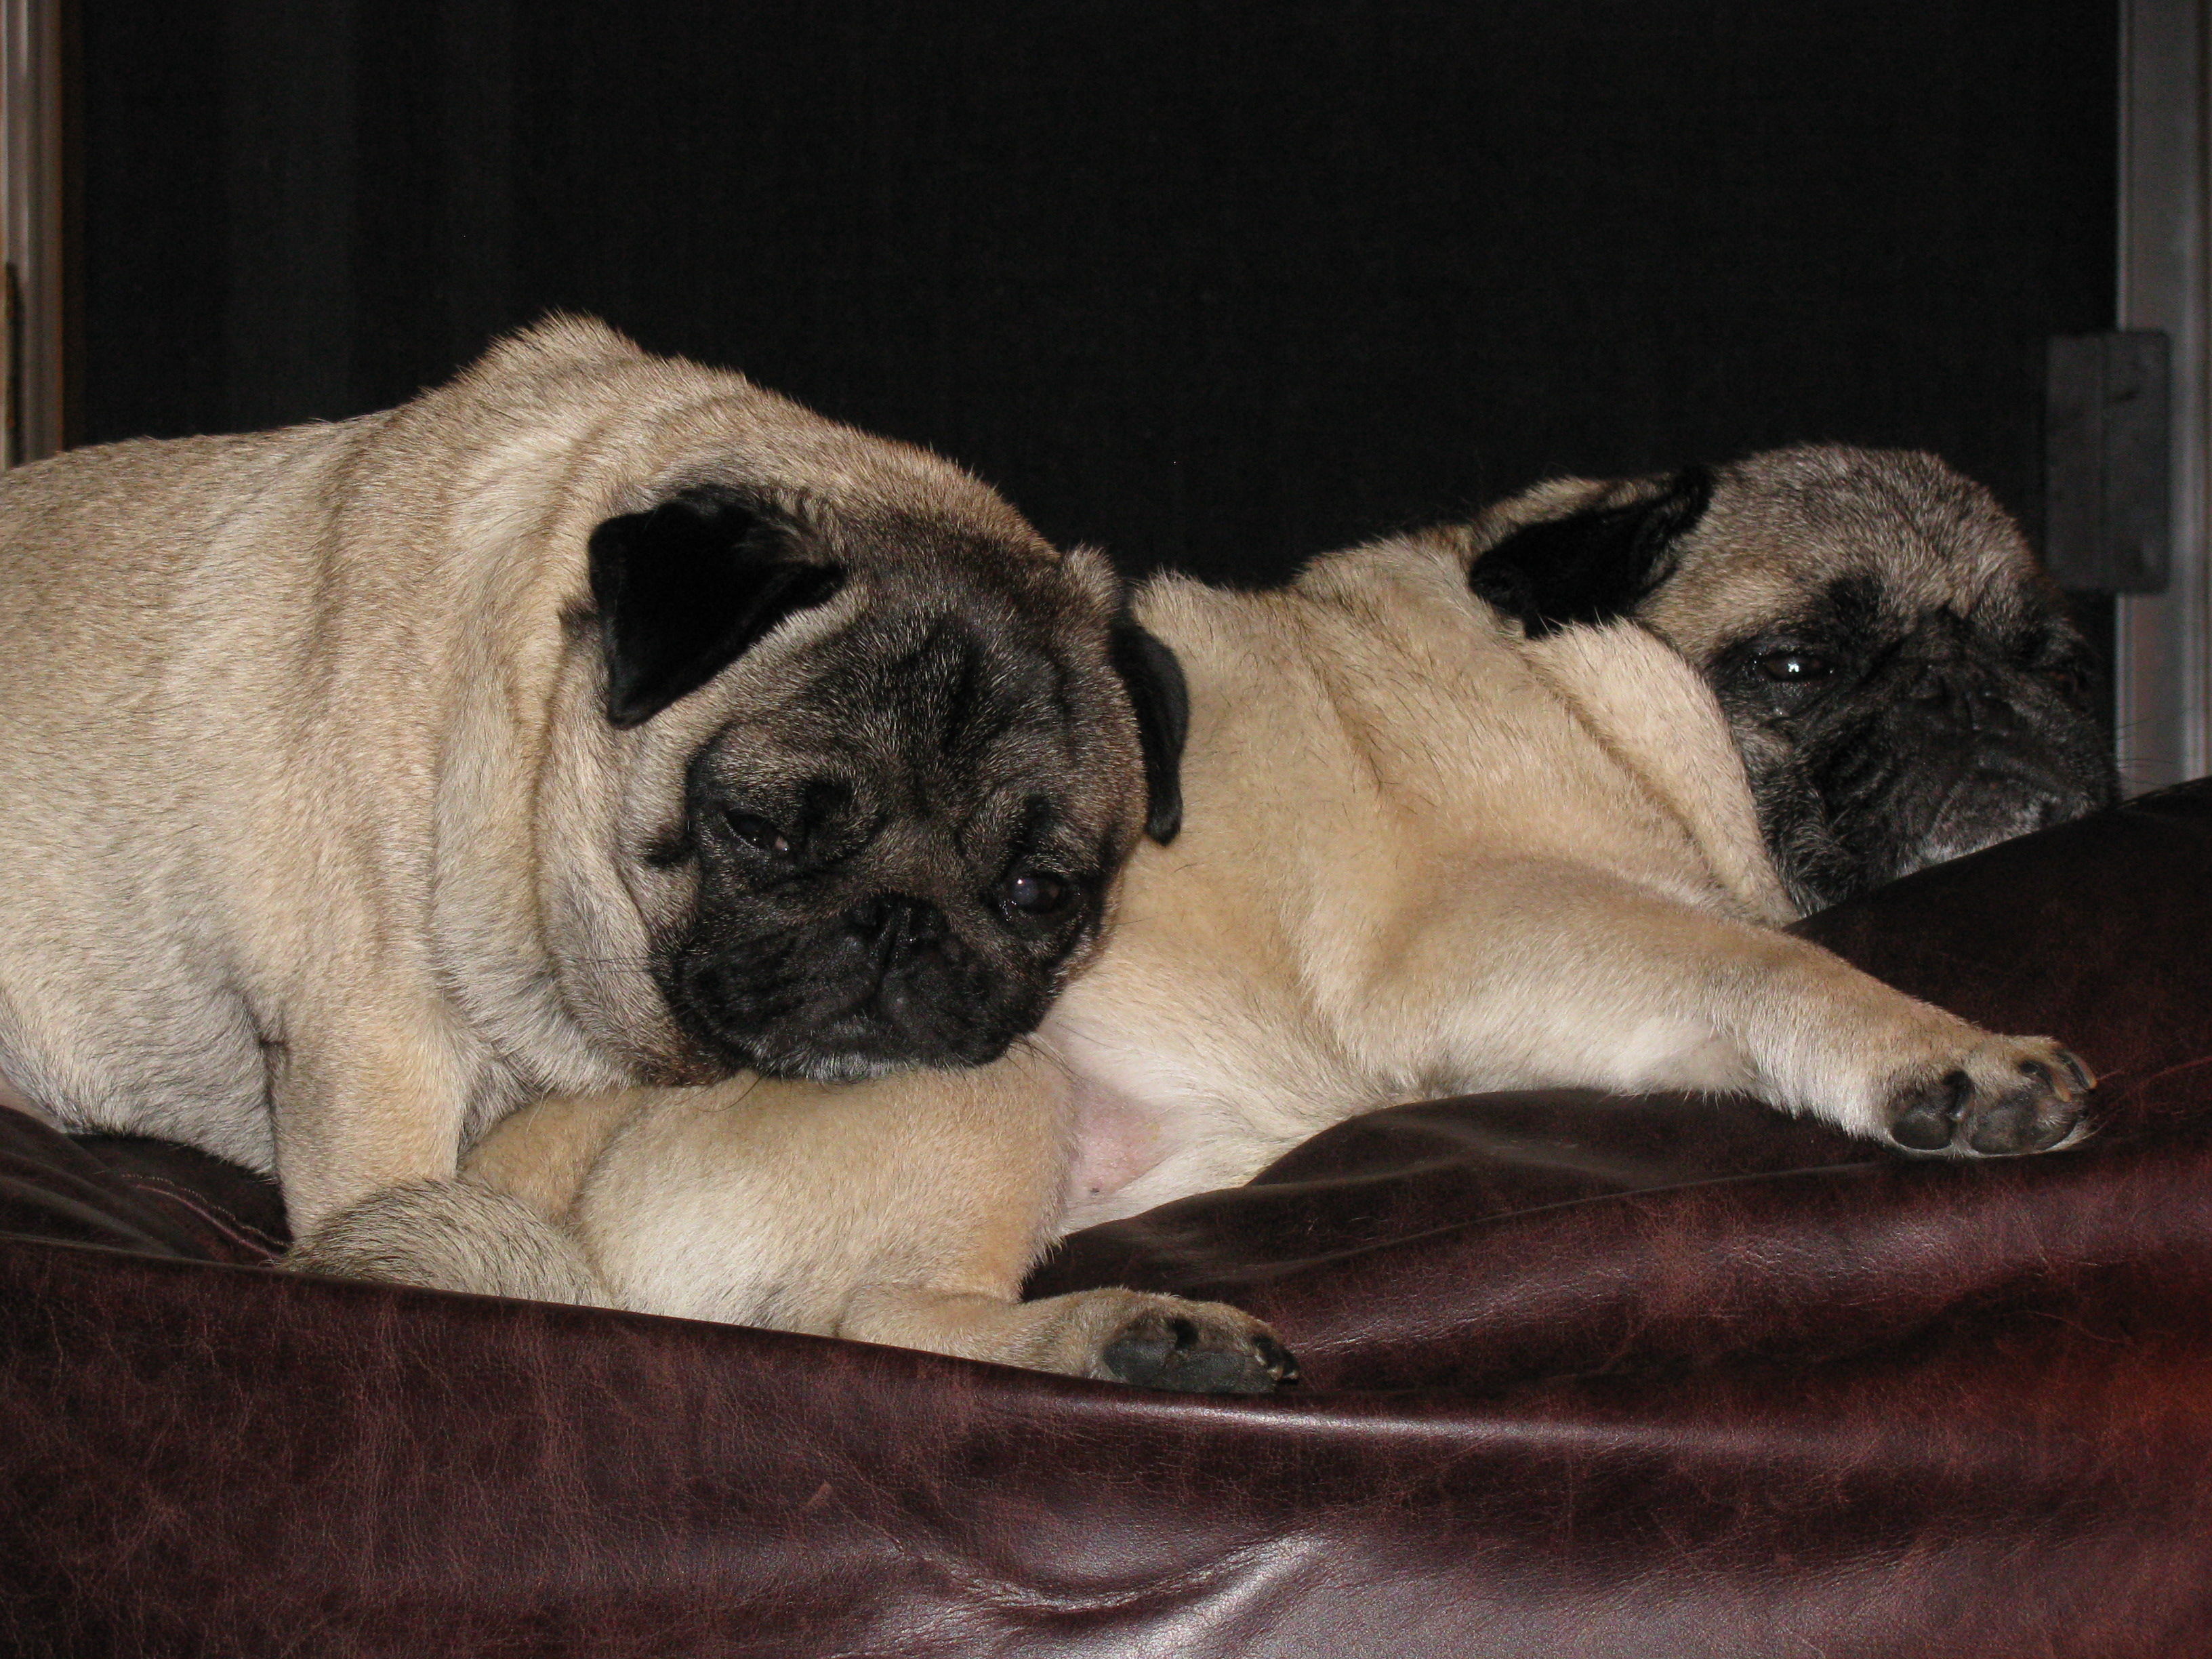 Caught again by that d--- pug cam in our most compromising and intimate of positions!